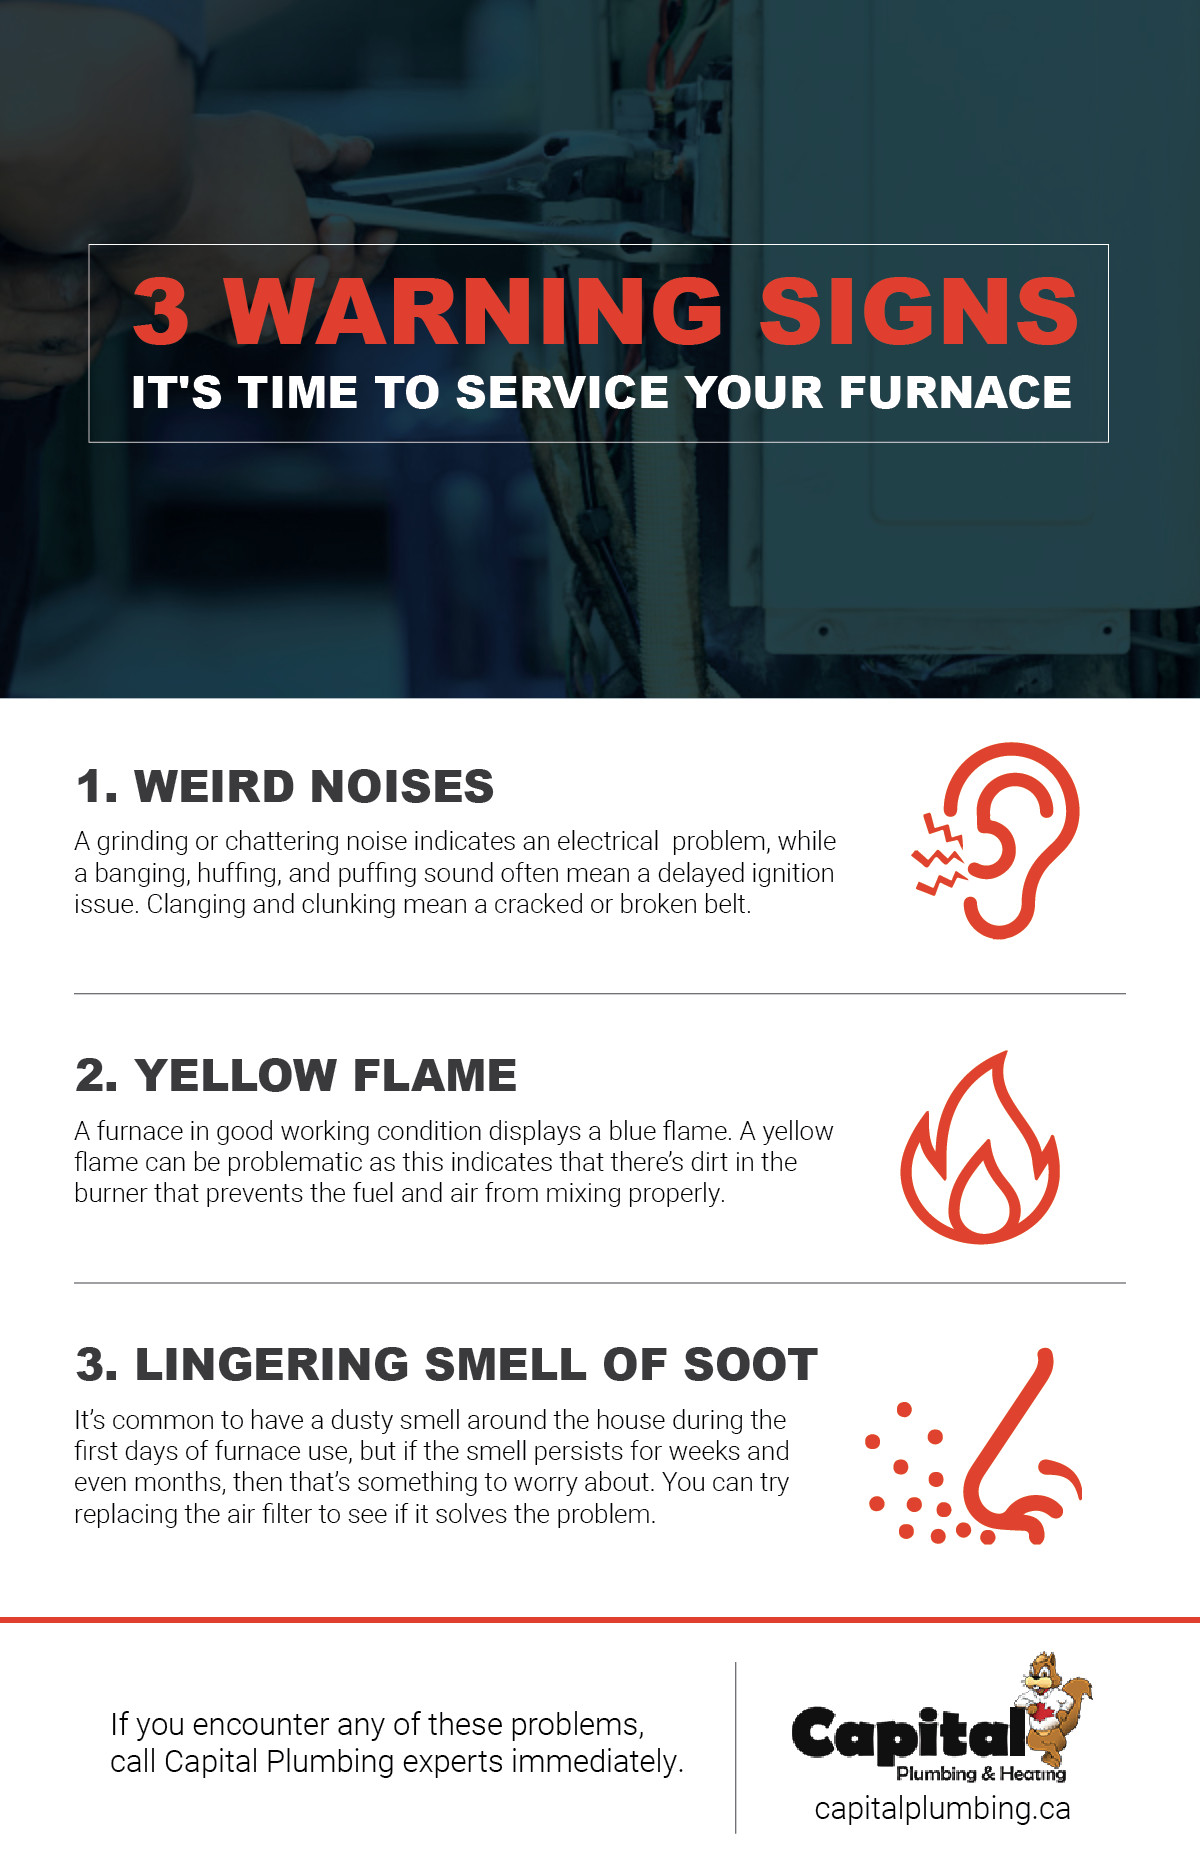 Warning Signs It's Time To Service Your Furnace